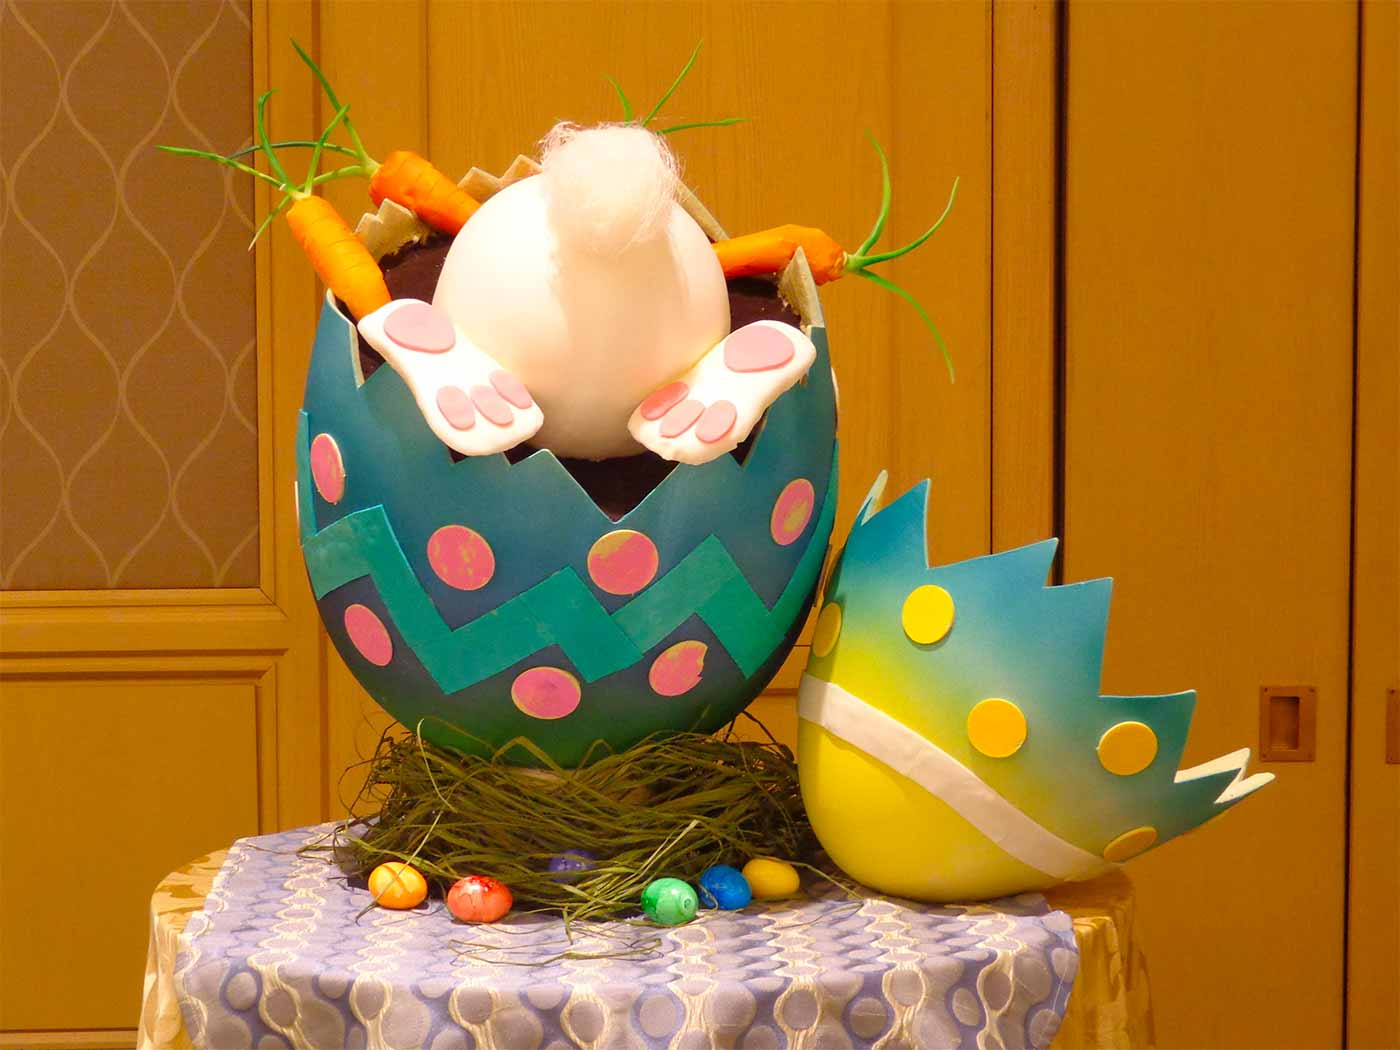 Easter centerpiece made entirely of chocolate